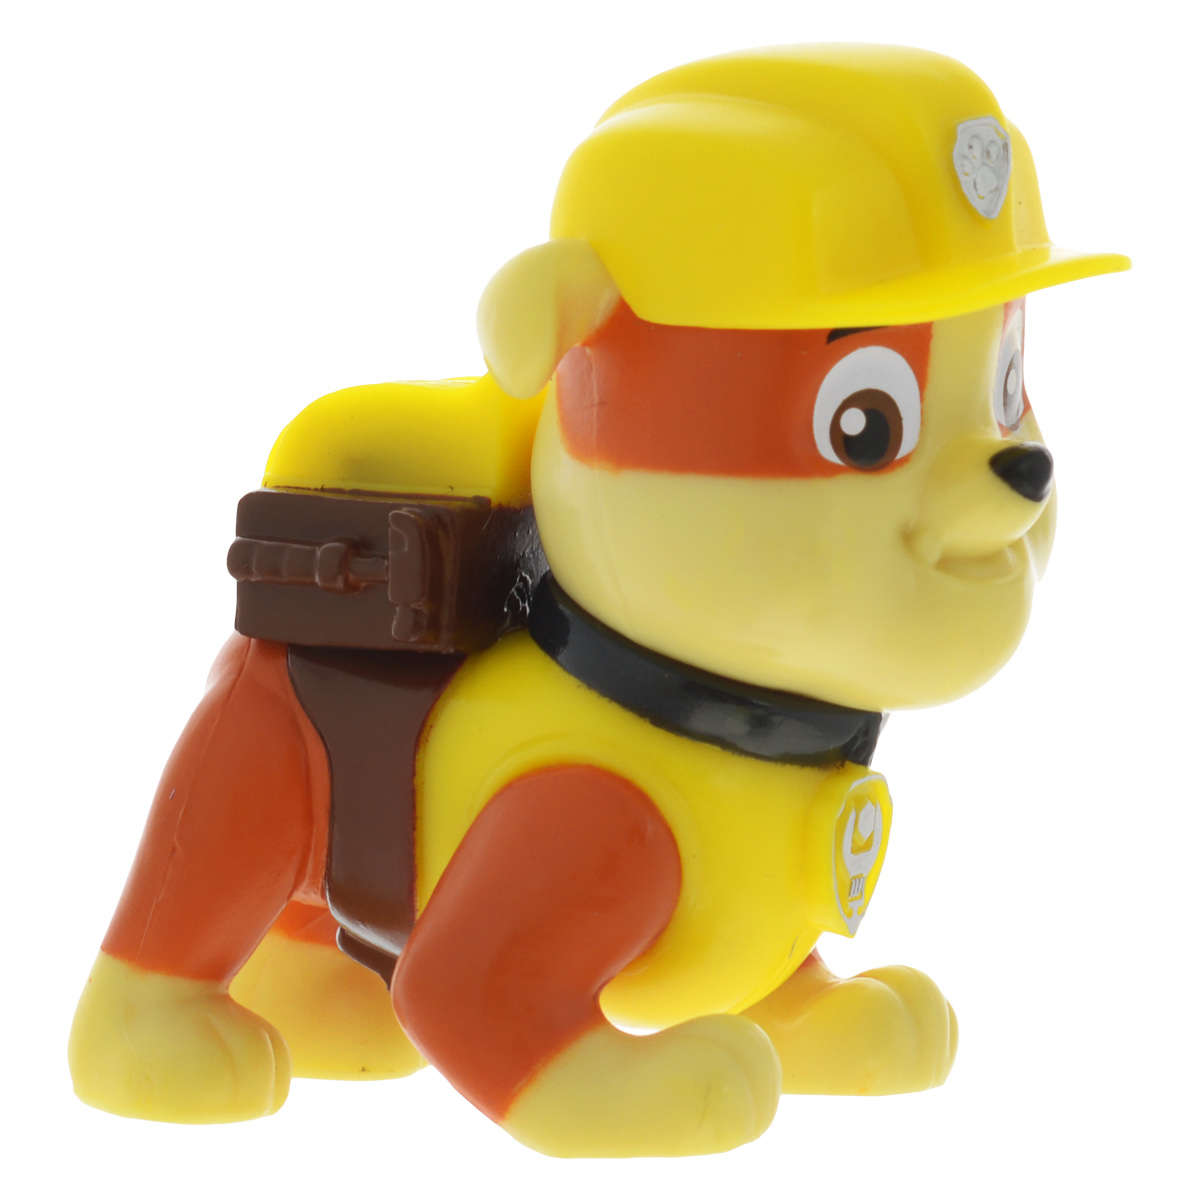 Мини-фигурка Щенячий патруль Щенок Rubble. 16612_20066913 paw patrol фигурка rubble